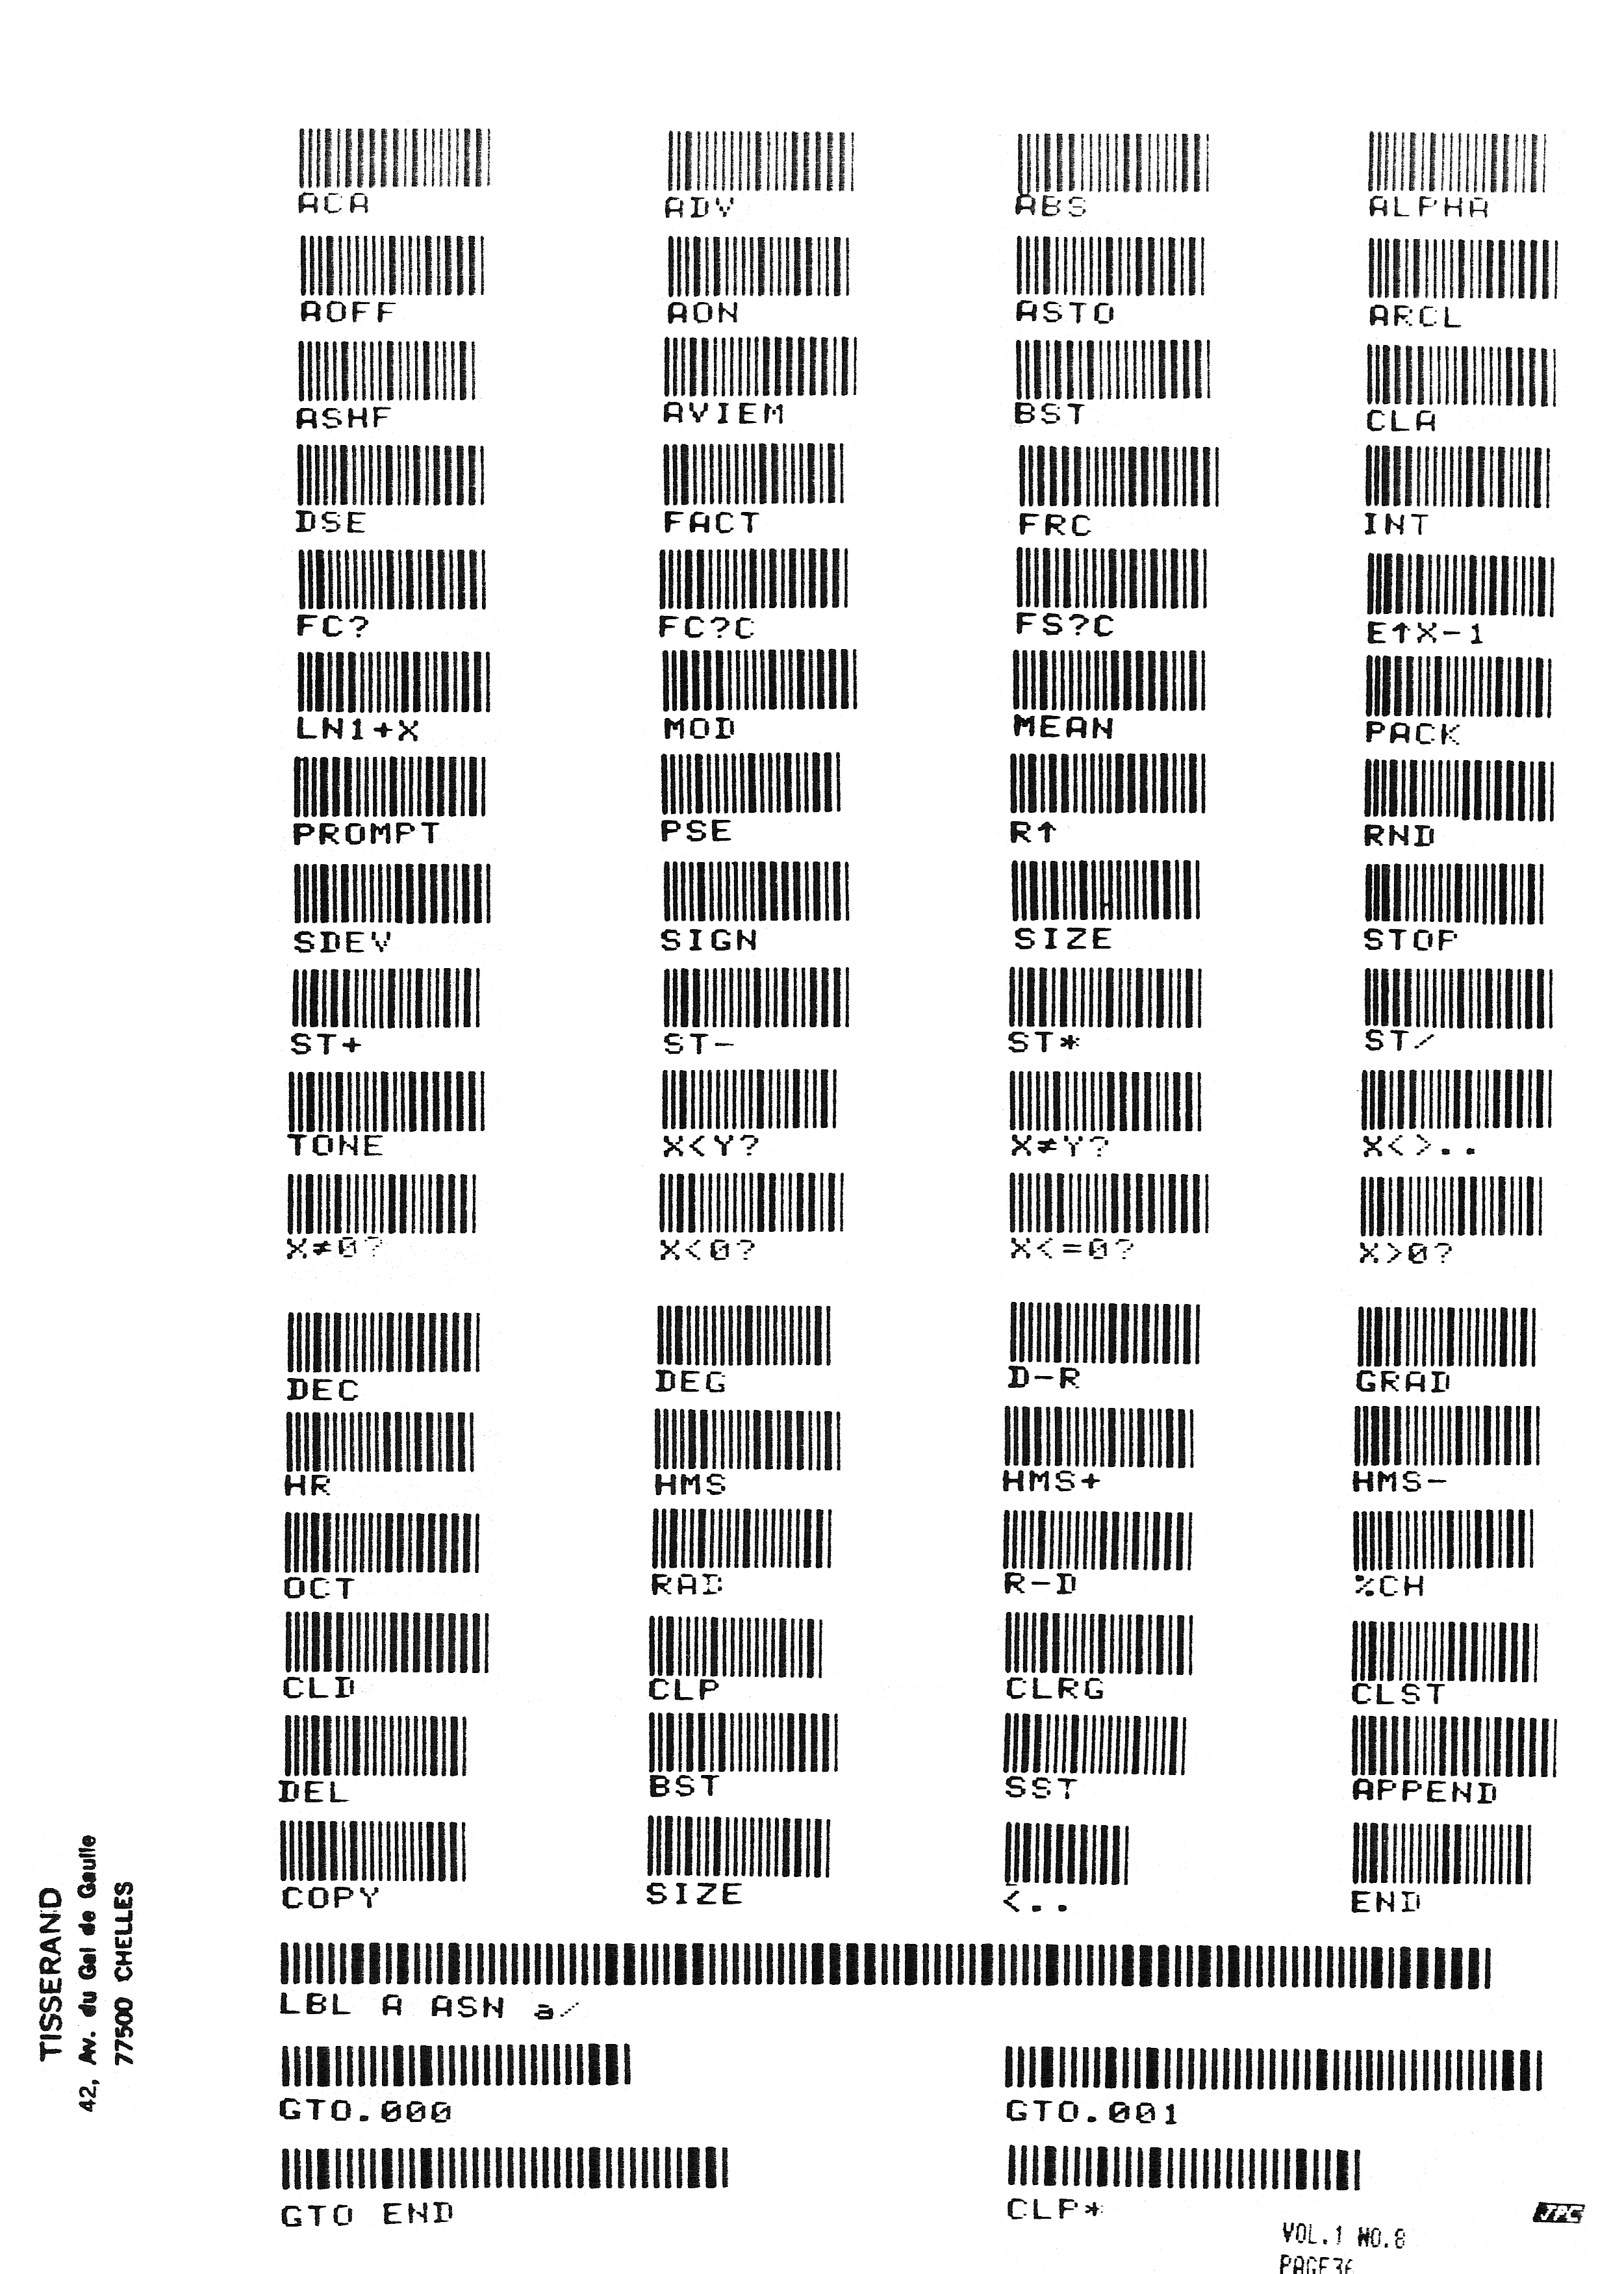 Jp-8-page-36-1000